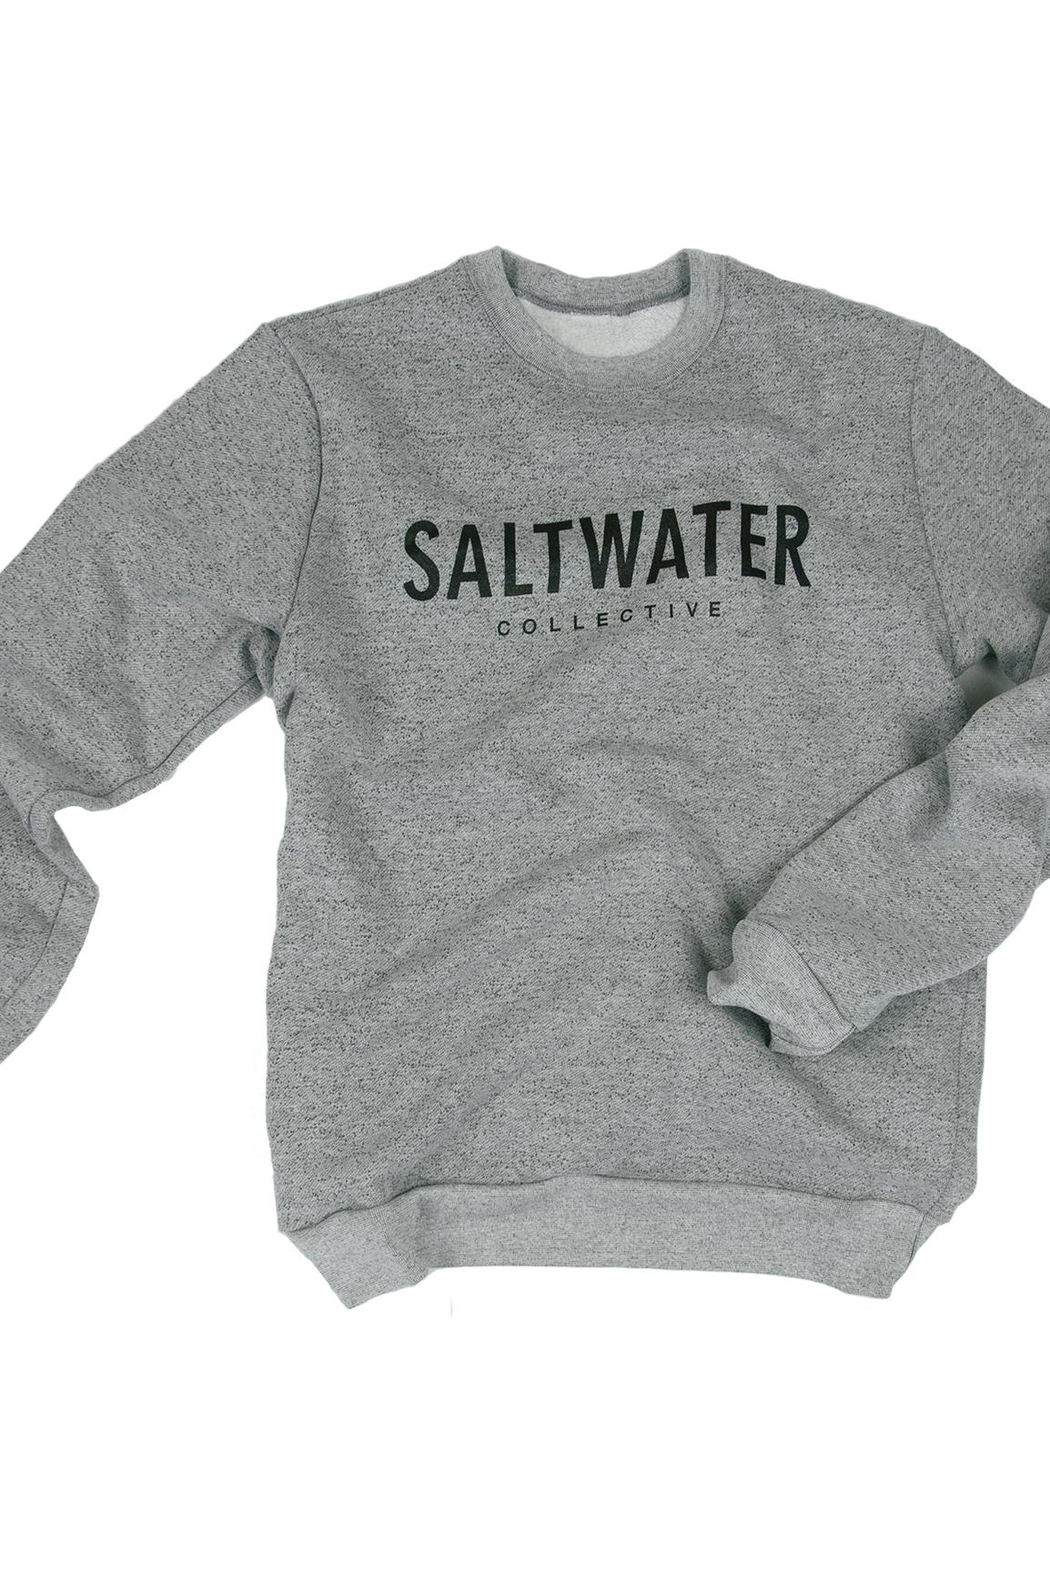 The Saltwater Collective Saltwater Crew - Grey - Main Image